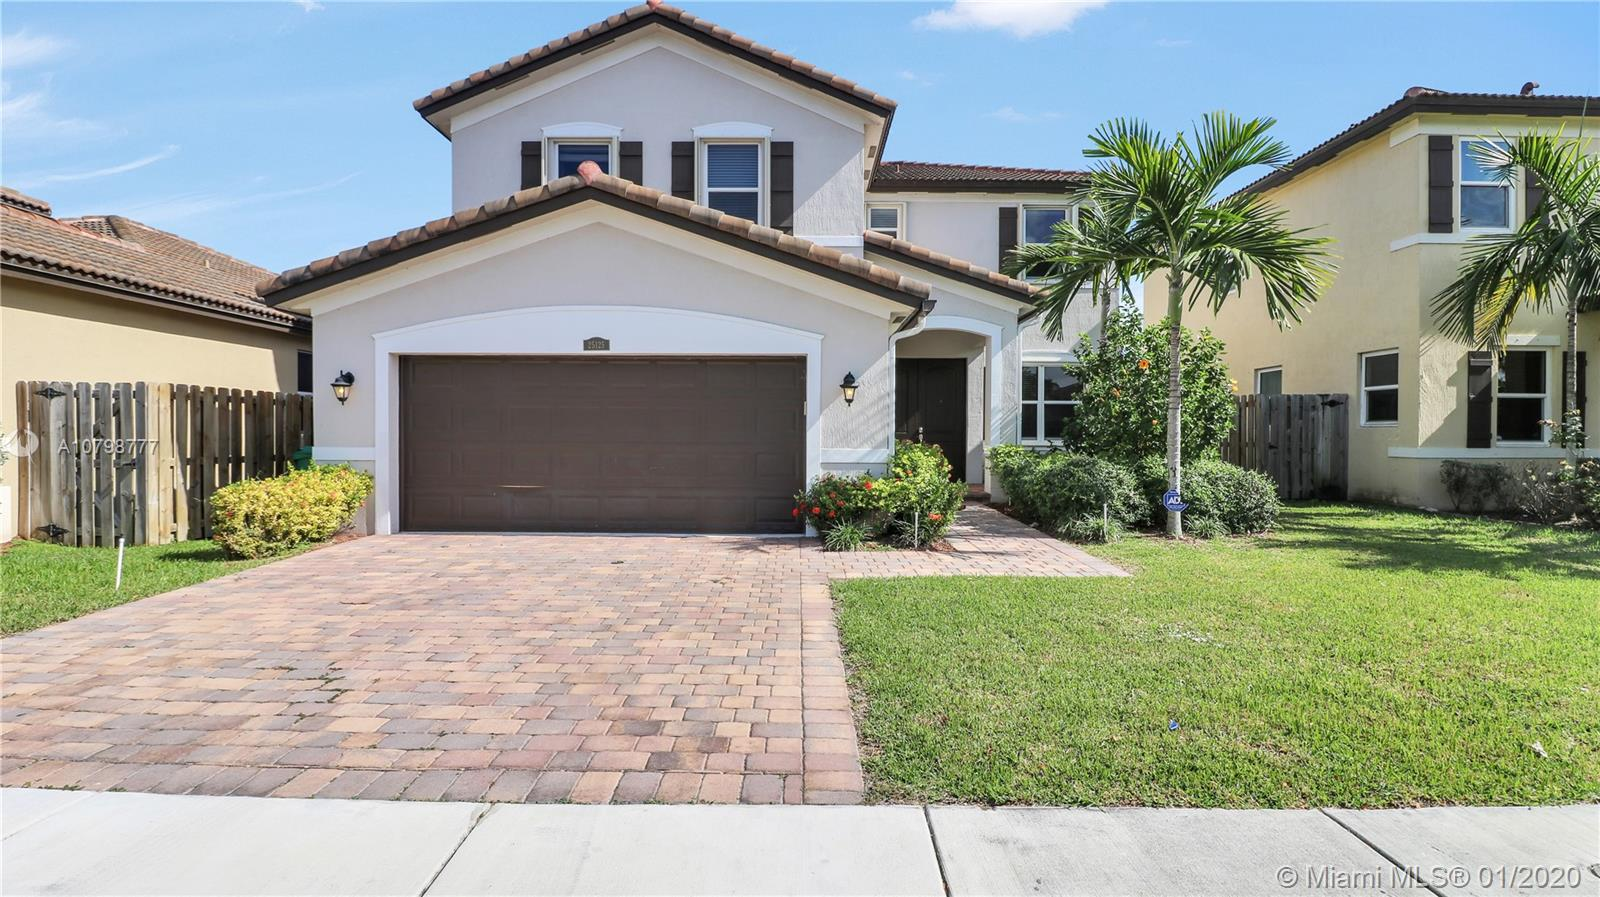 25125 SW 119th Ave, Homestead, FL 33032 - Homestead, FL real estate listing